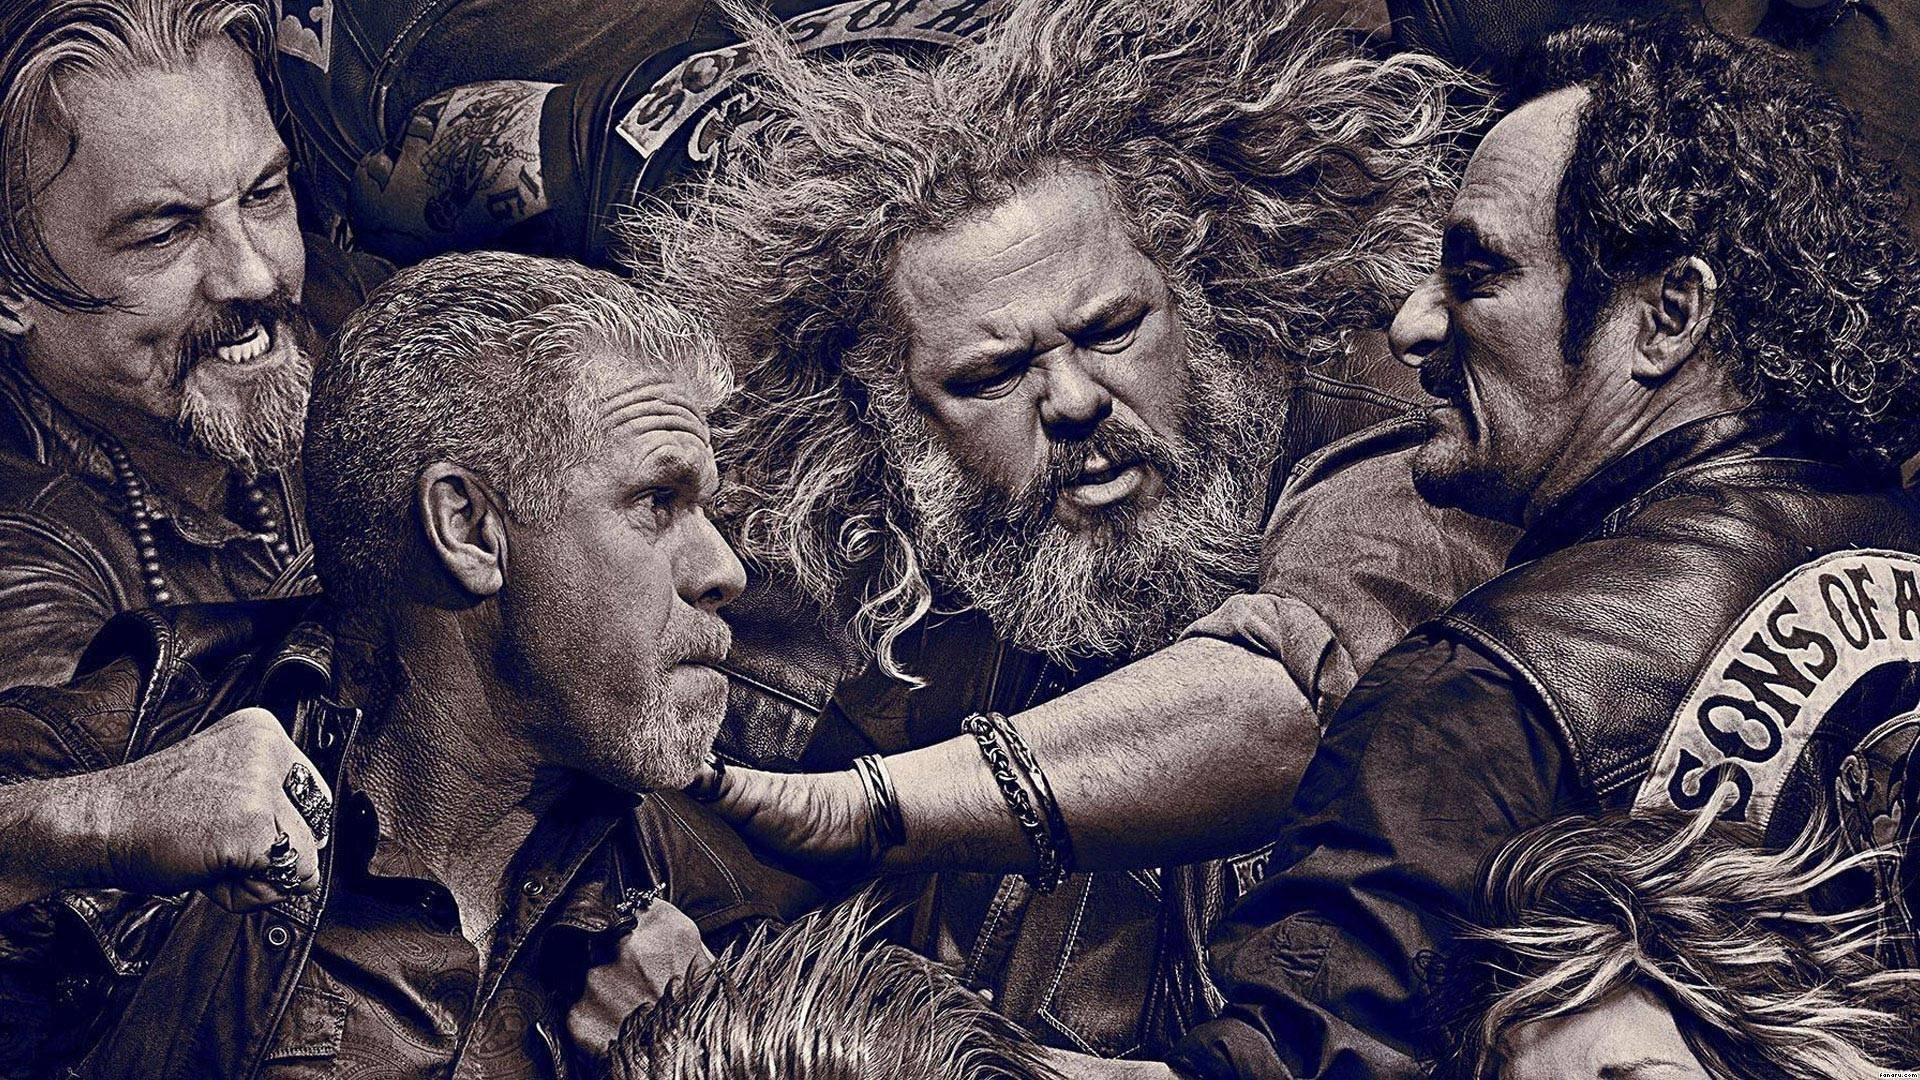 Free Sons Of Anarchy High Quality Wallpaper Id 187580 For Full Hd